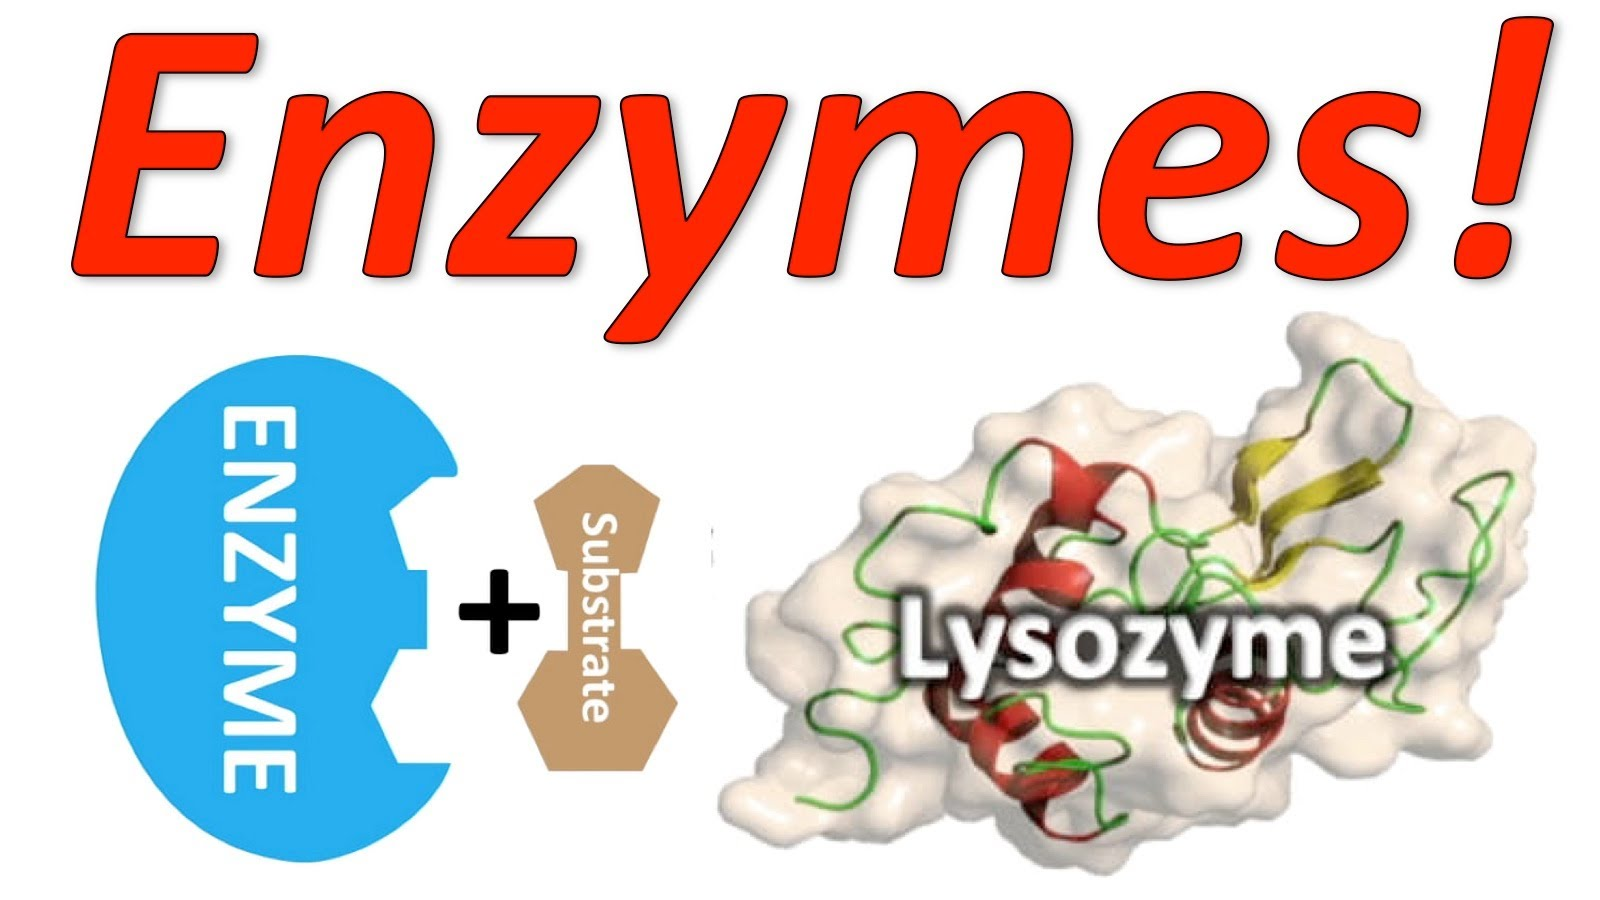 Optimum Conditions For Enzymes Biology Study Material